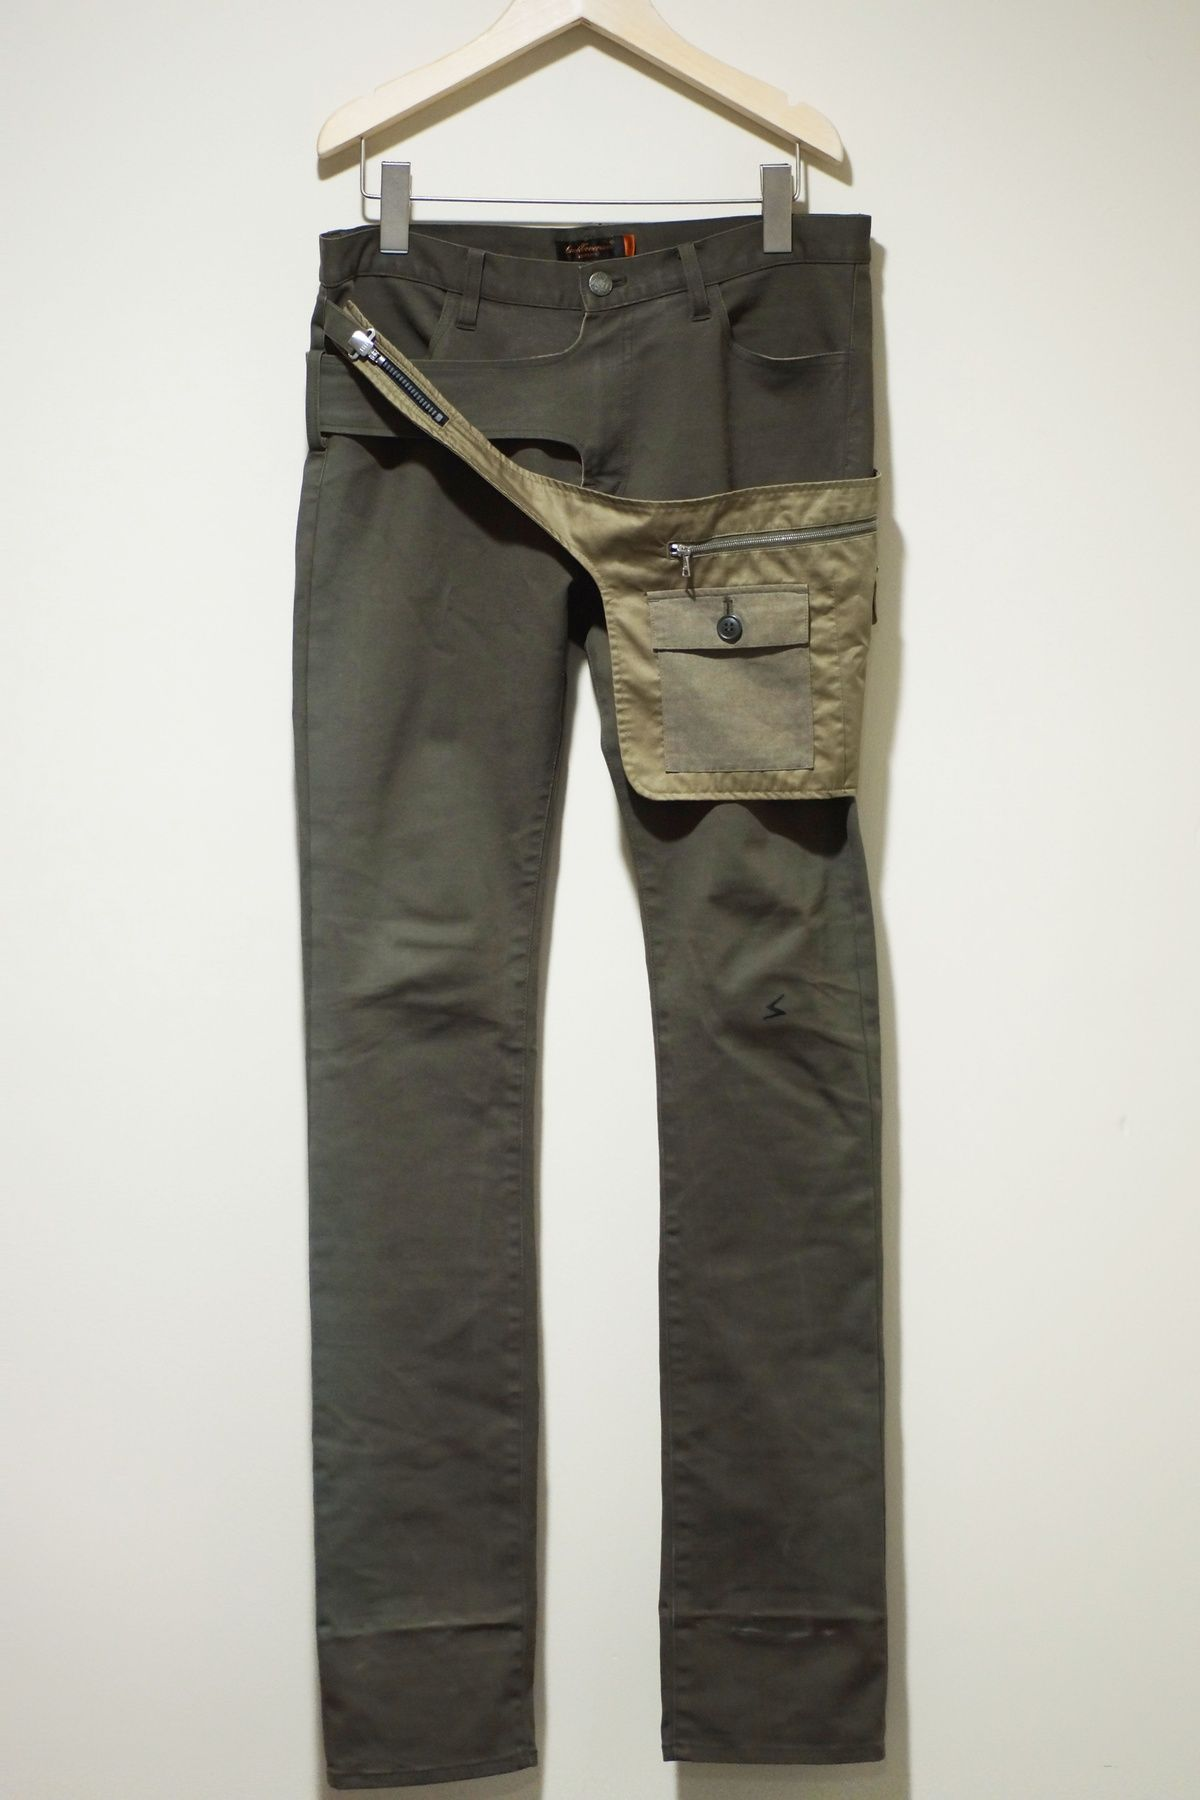 skinny trousers - Brown Undercover 9tojqOMs